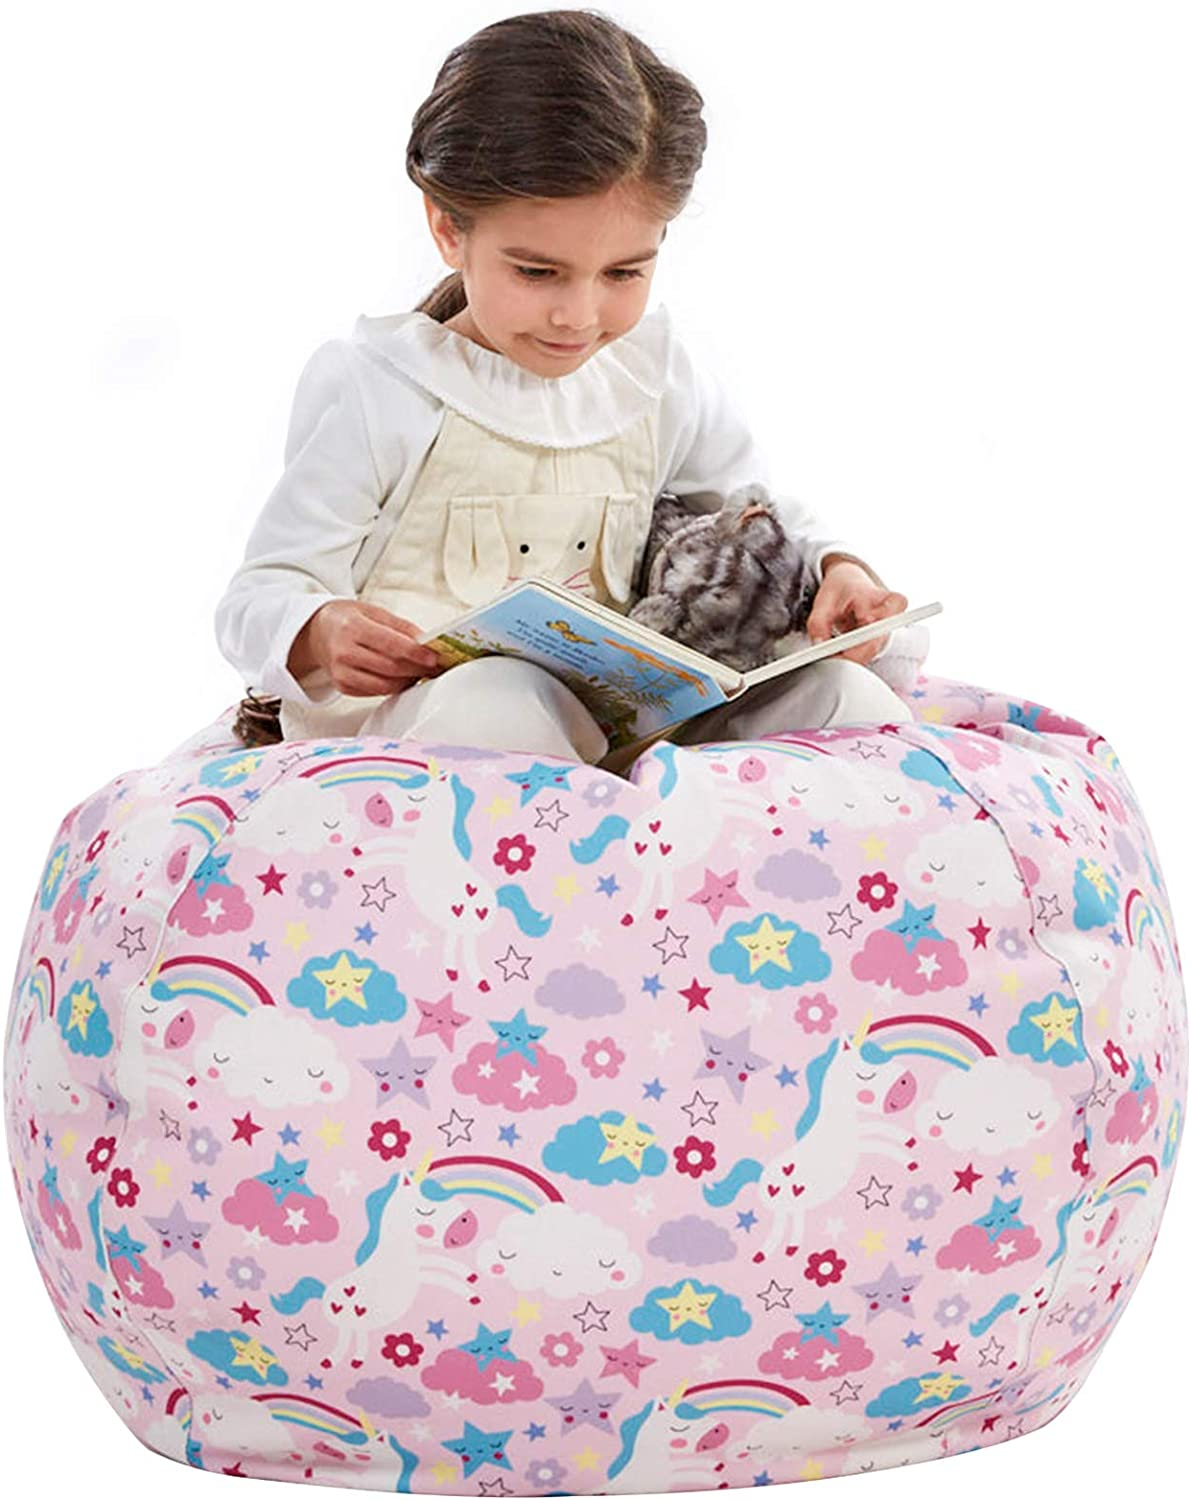 Nobildonna Stuffed Animal Storage Bean Bag Chair Cover Only for Kids Girls Toddler, Large Beanbag Chair Without Filling for Organizing Children Soft Plush Toys (32x29inch)